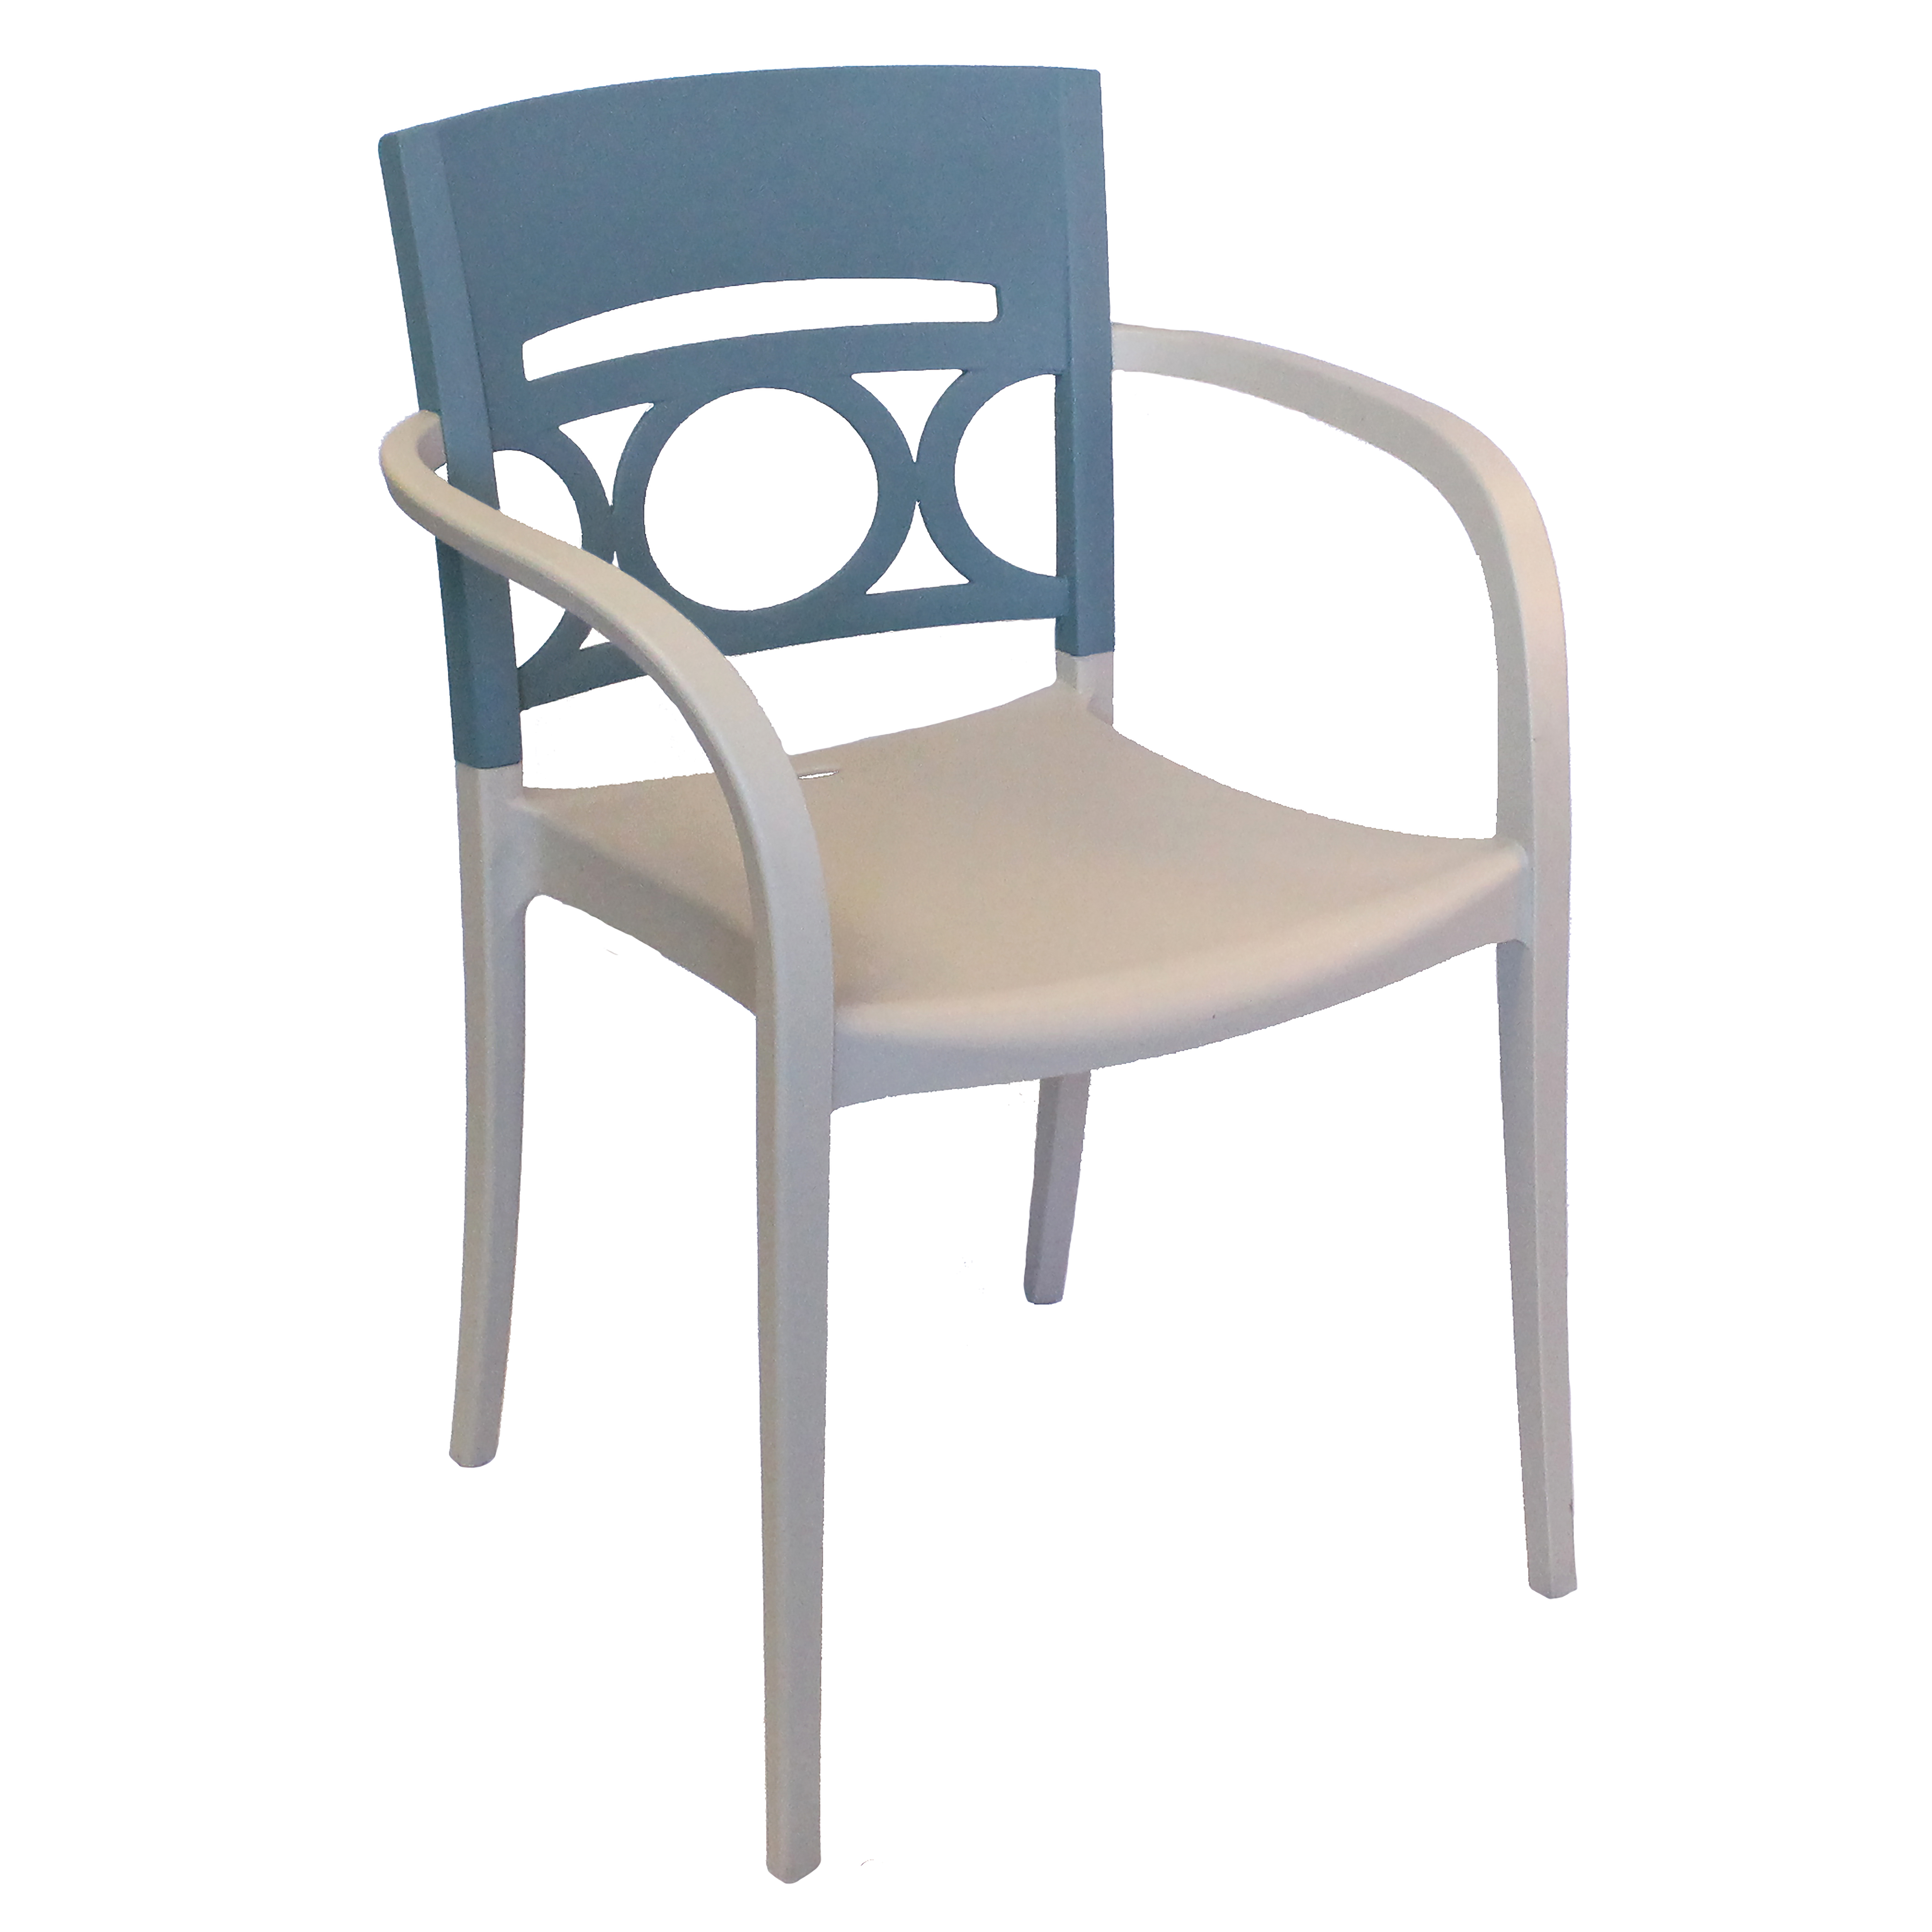 Grosfillex US655680 chair, armchair, stacking, outdoor